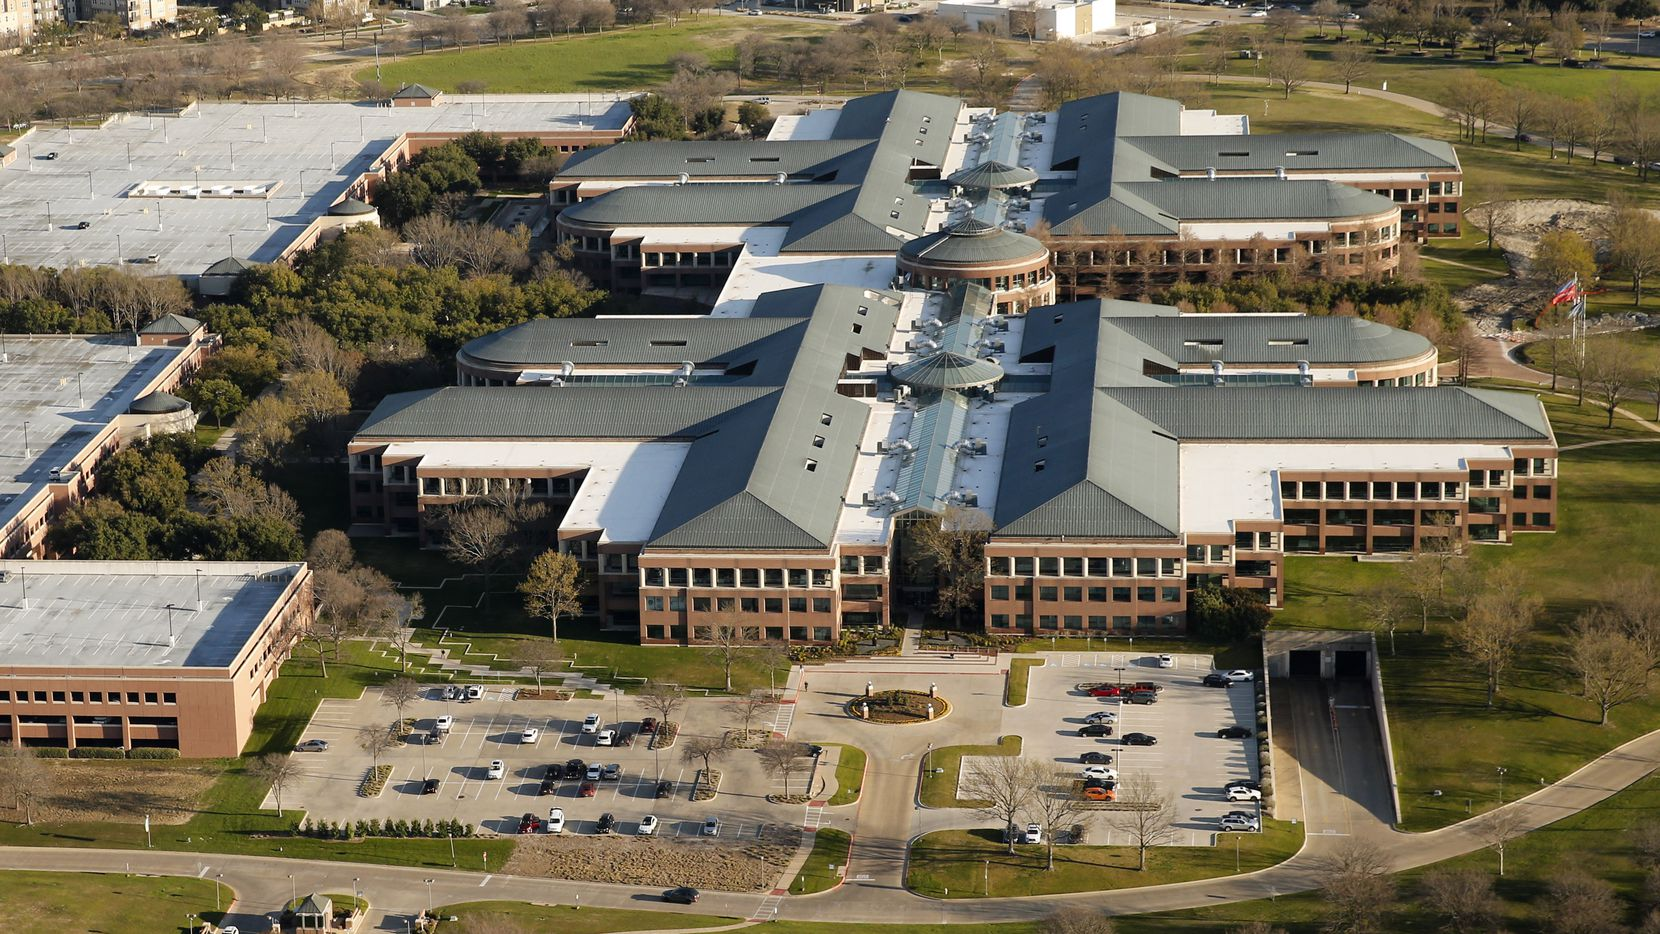 J.C. Penney built this almost 1.9 million square foot headquarters campus in Plano in 1992 after moving to Texas in 1988 from New York City.